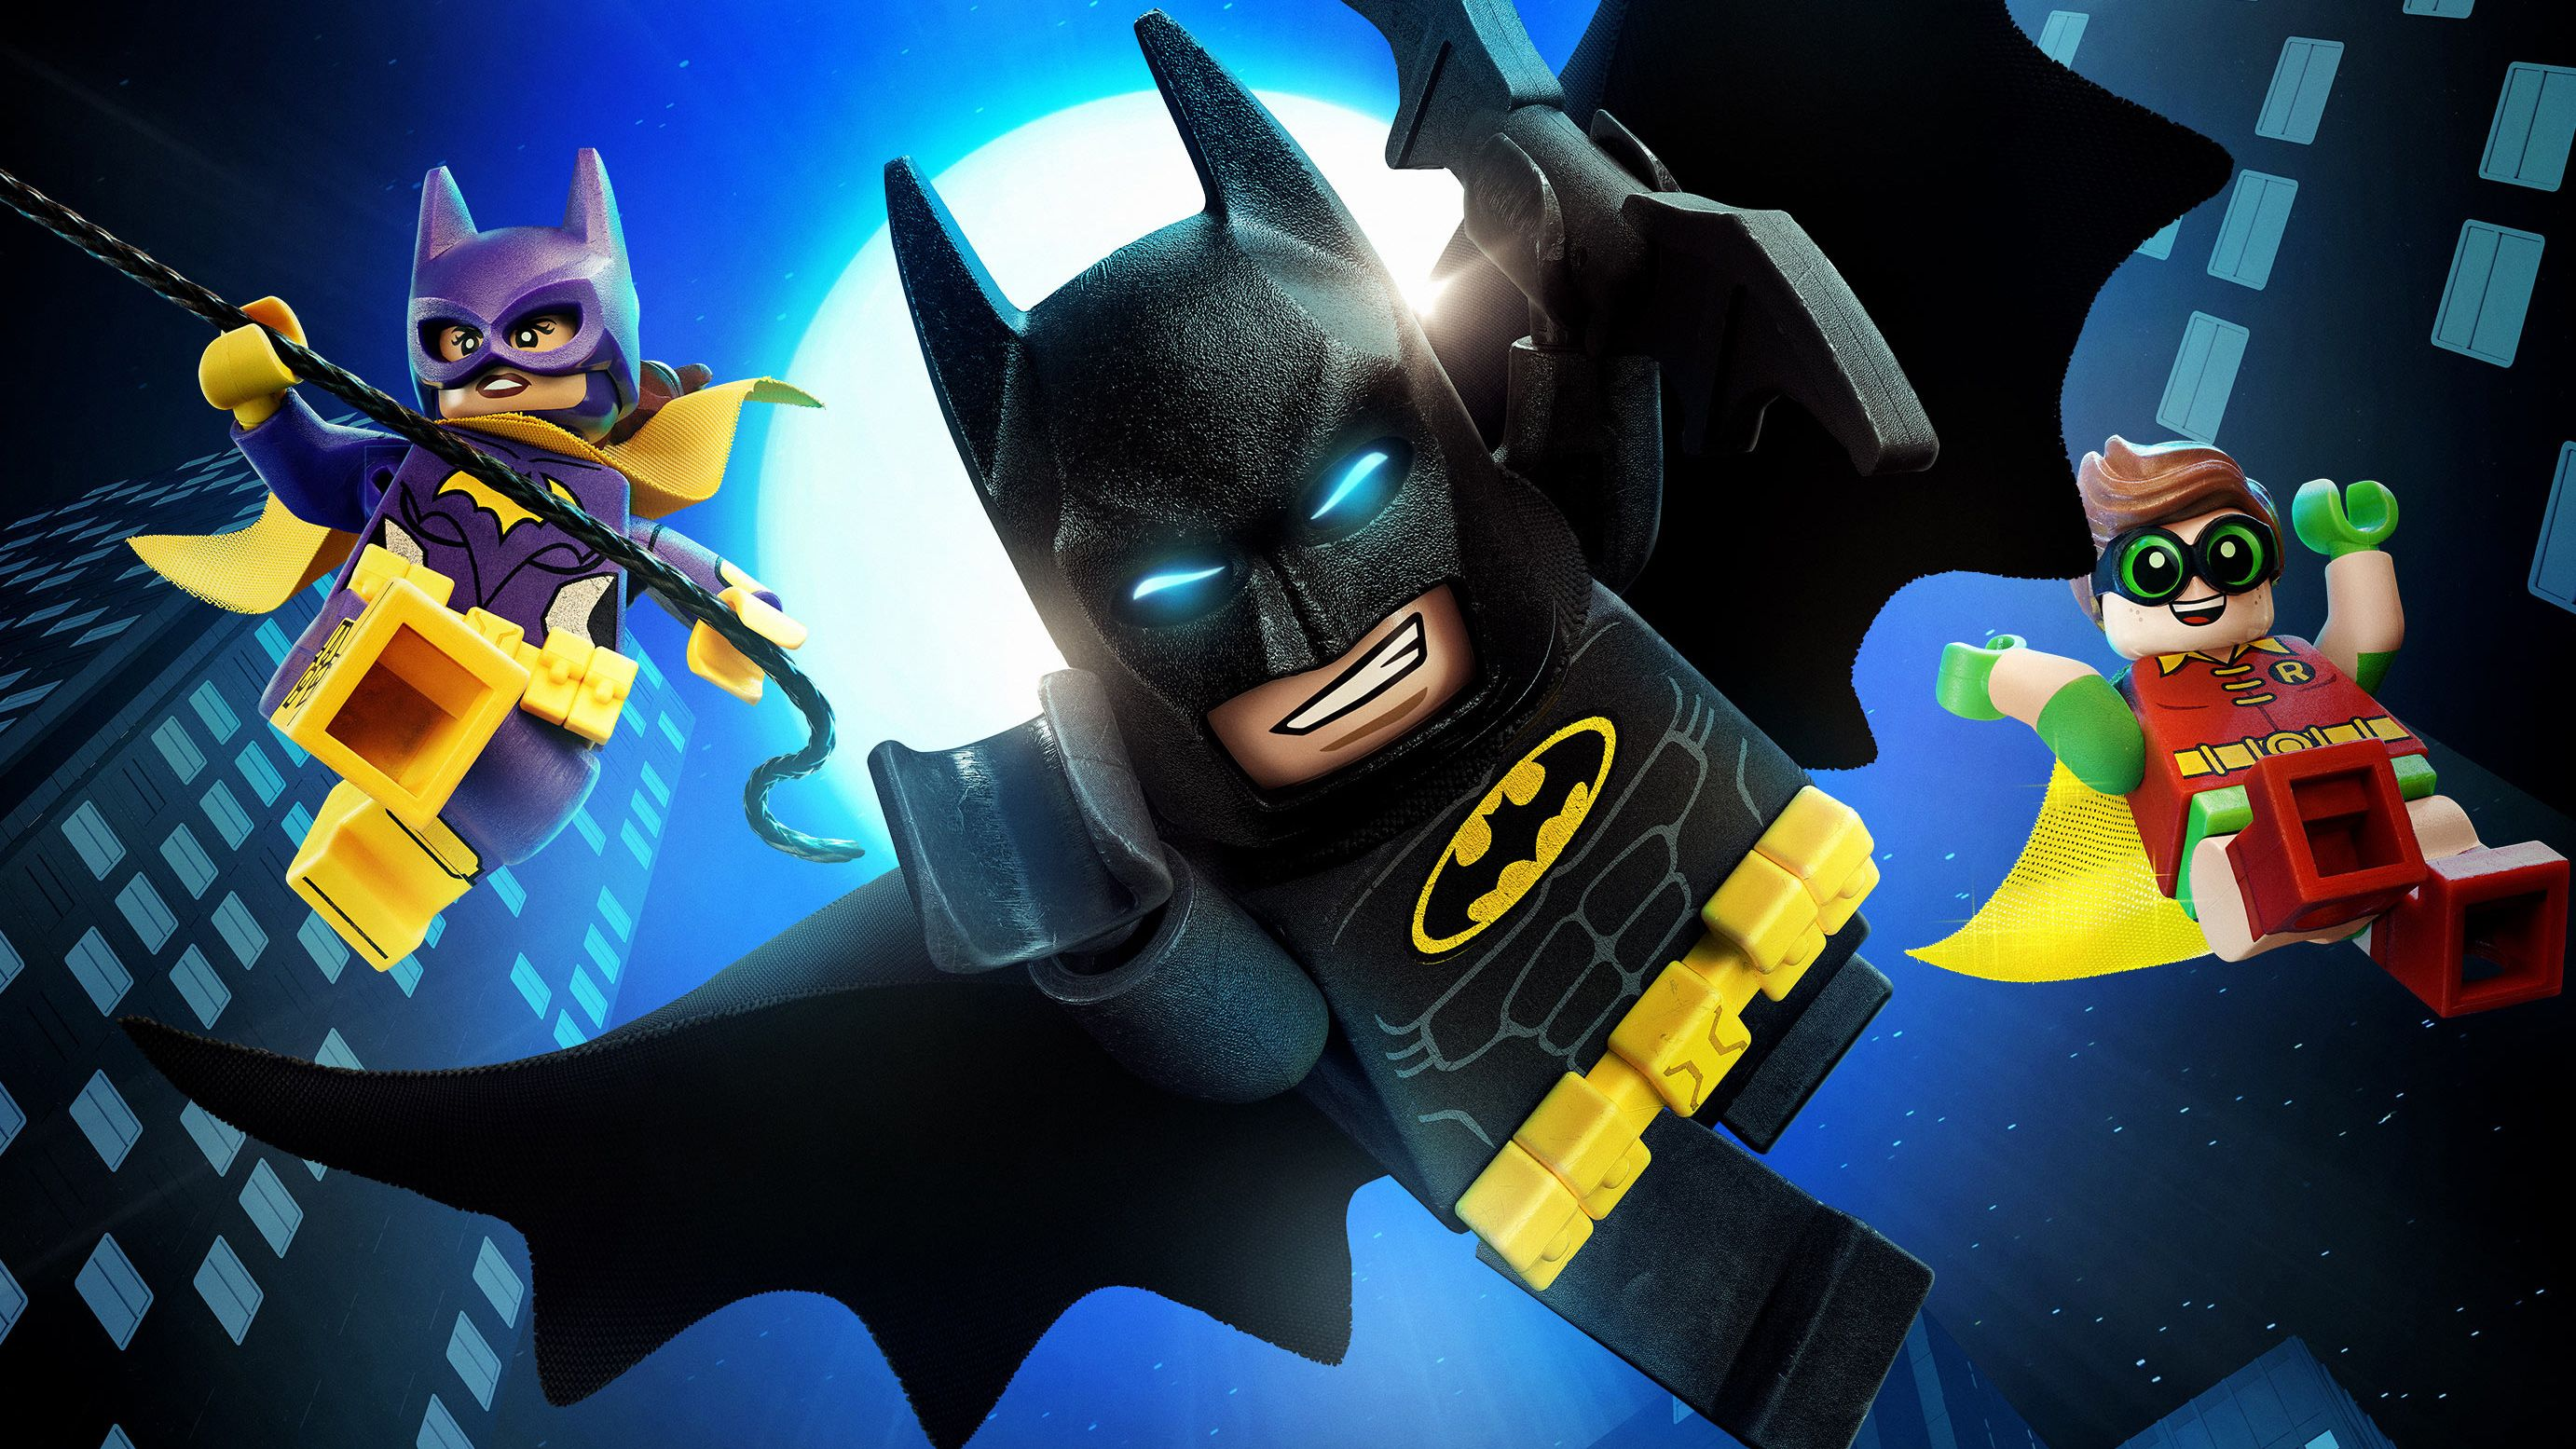 Lego batman dc super heroes hd wallpapers backgrounds art lego batman dc super heroes hd wallpapers backgrounds voltagebd Image collections